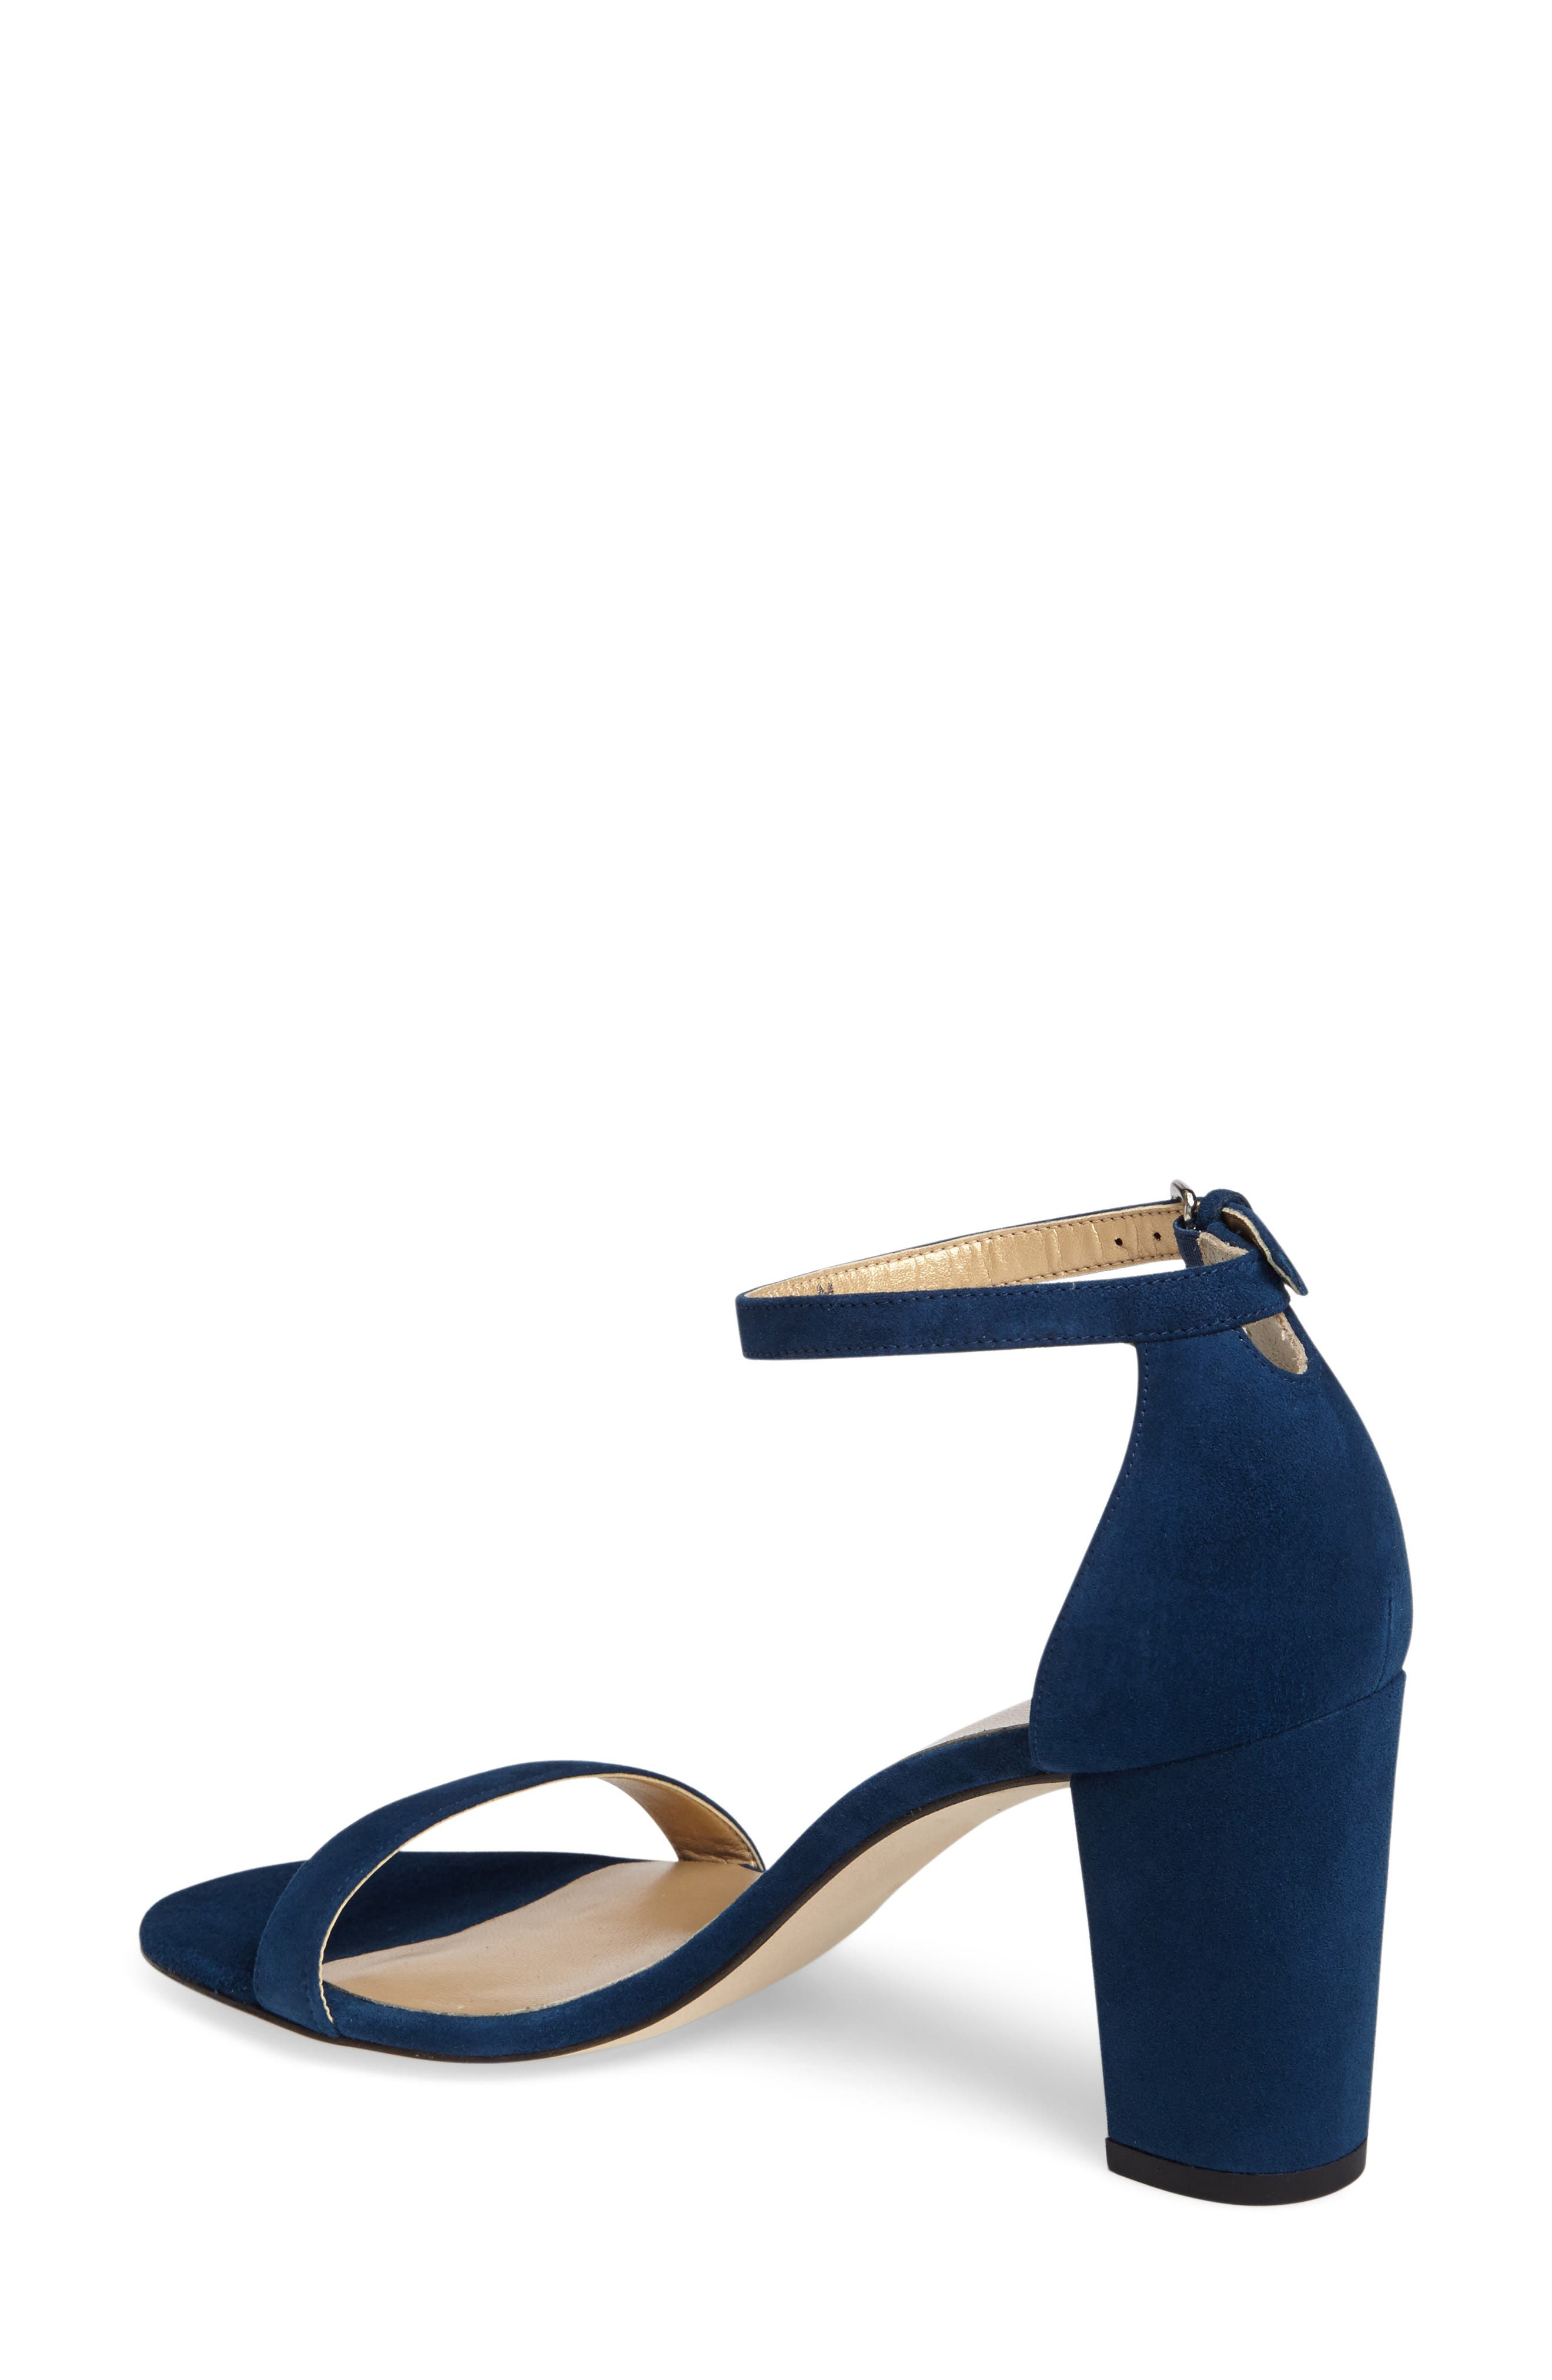 NearlyNude Ankle Strap Sandal,                             Alternate thumbnail 50, color,